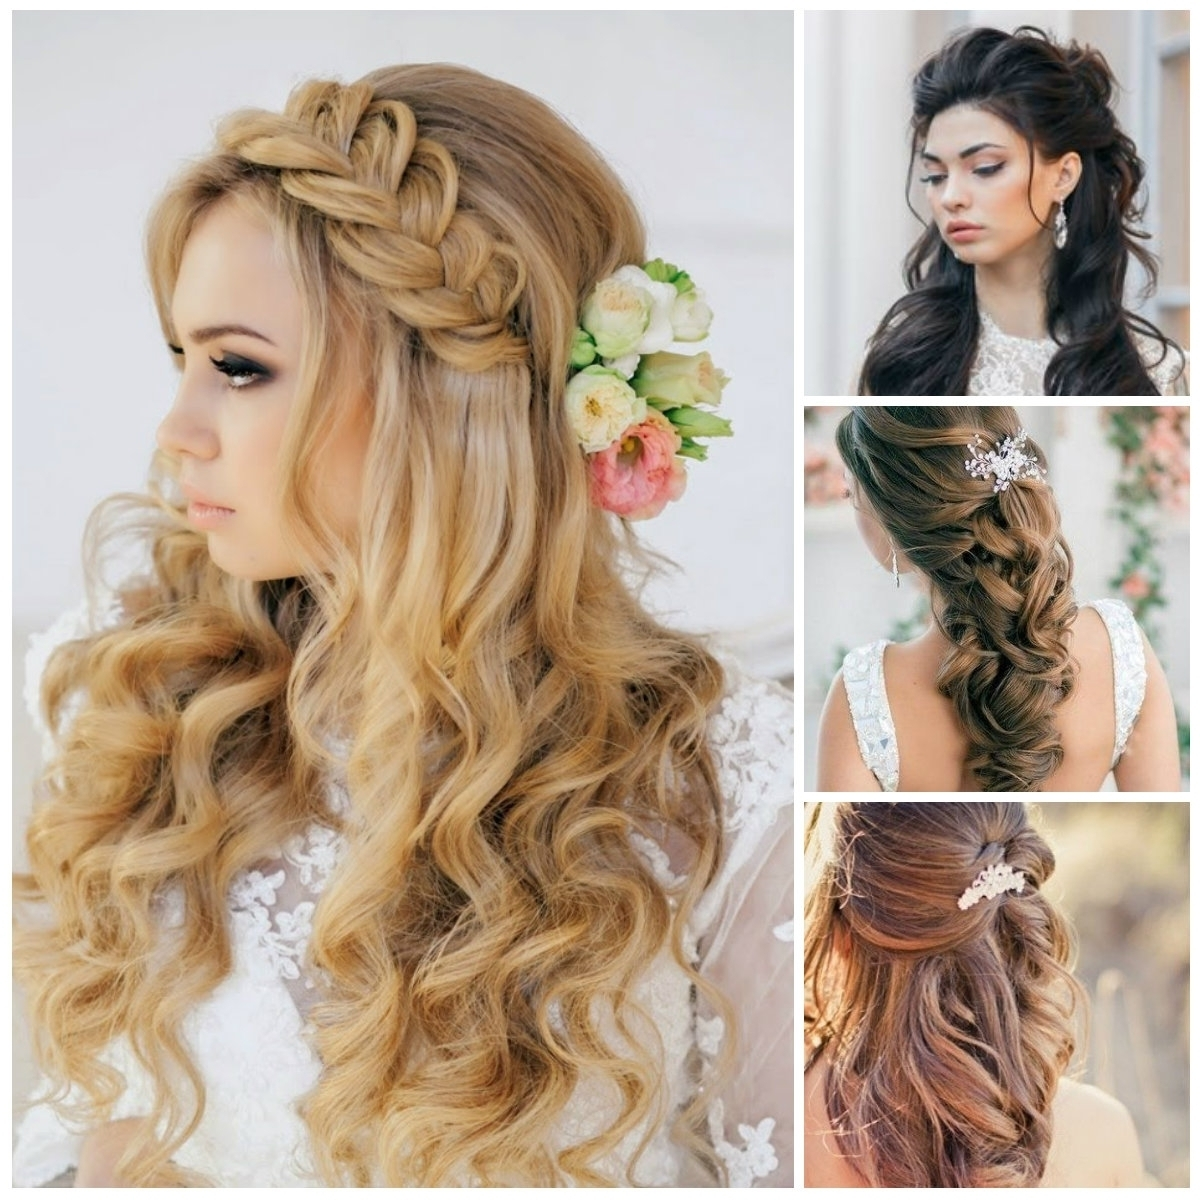 Stunning Wedding Hairstyles For Medium Length Ideas Bridal Shoulder Within Most Current Wedding Hairstyles For Medium Length Curly Hair (View 9 of 15)